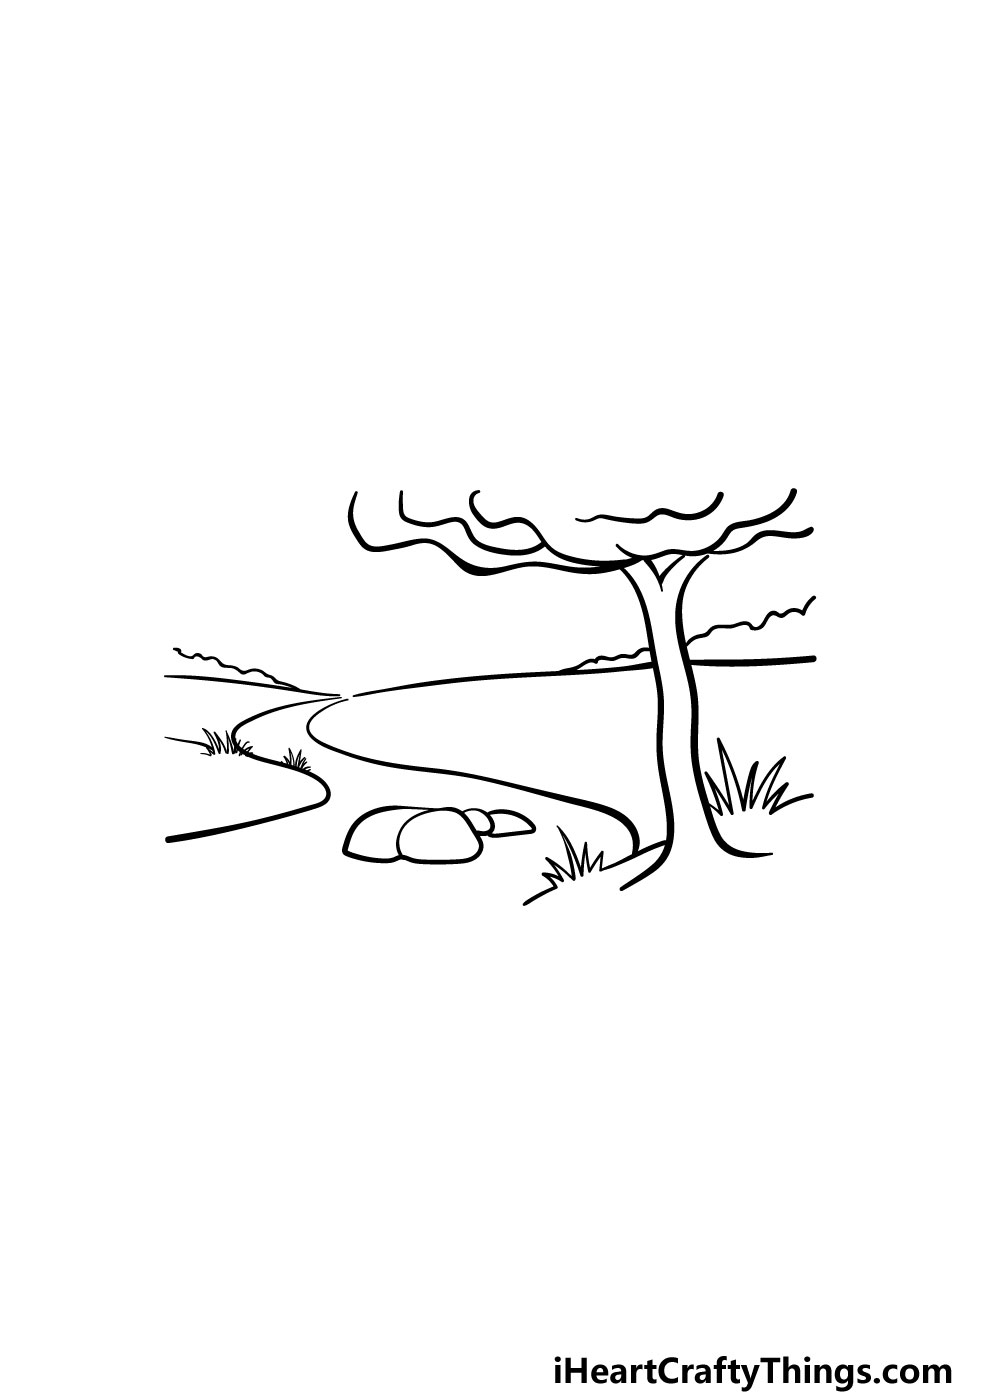 drawing a river step 5